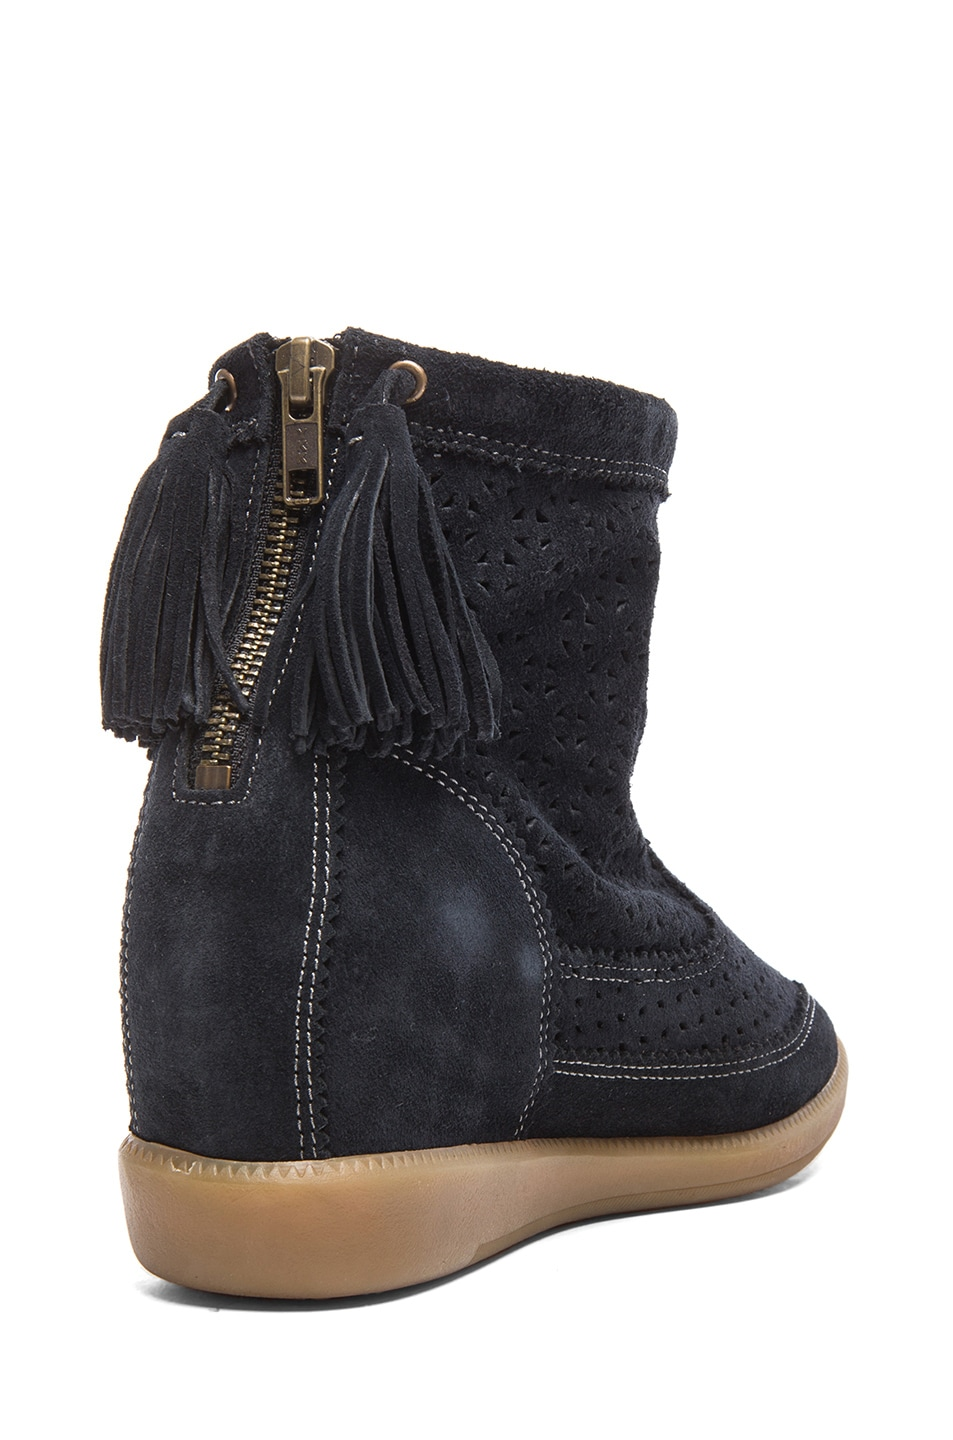 Image 3 of Isabel Marant Beslay Calfskin Velvet Leather Boots in Anthracite